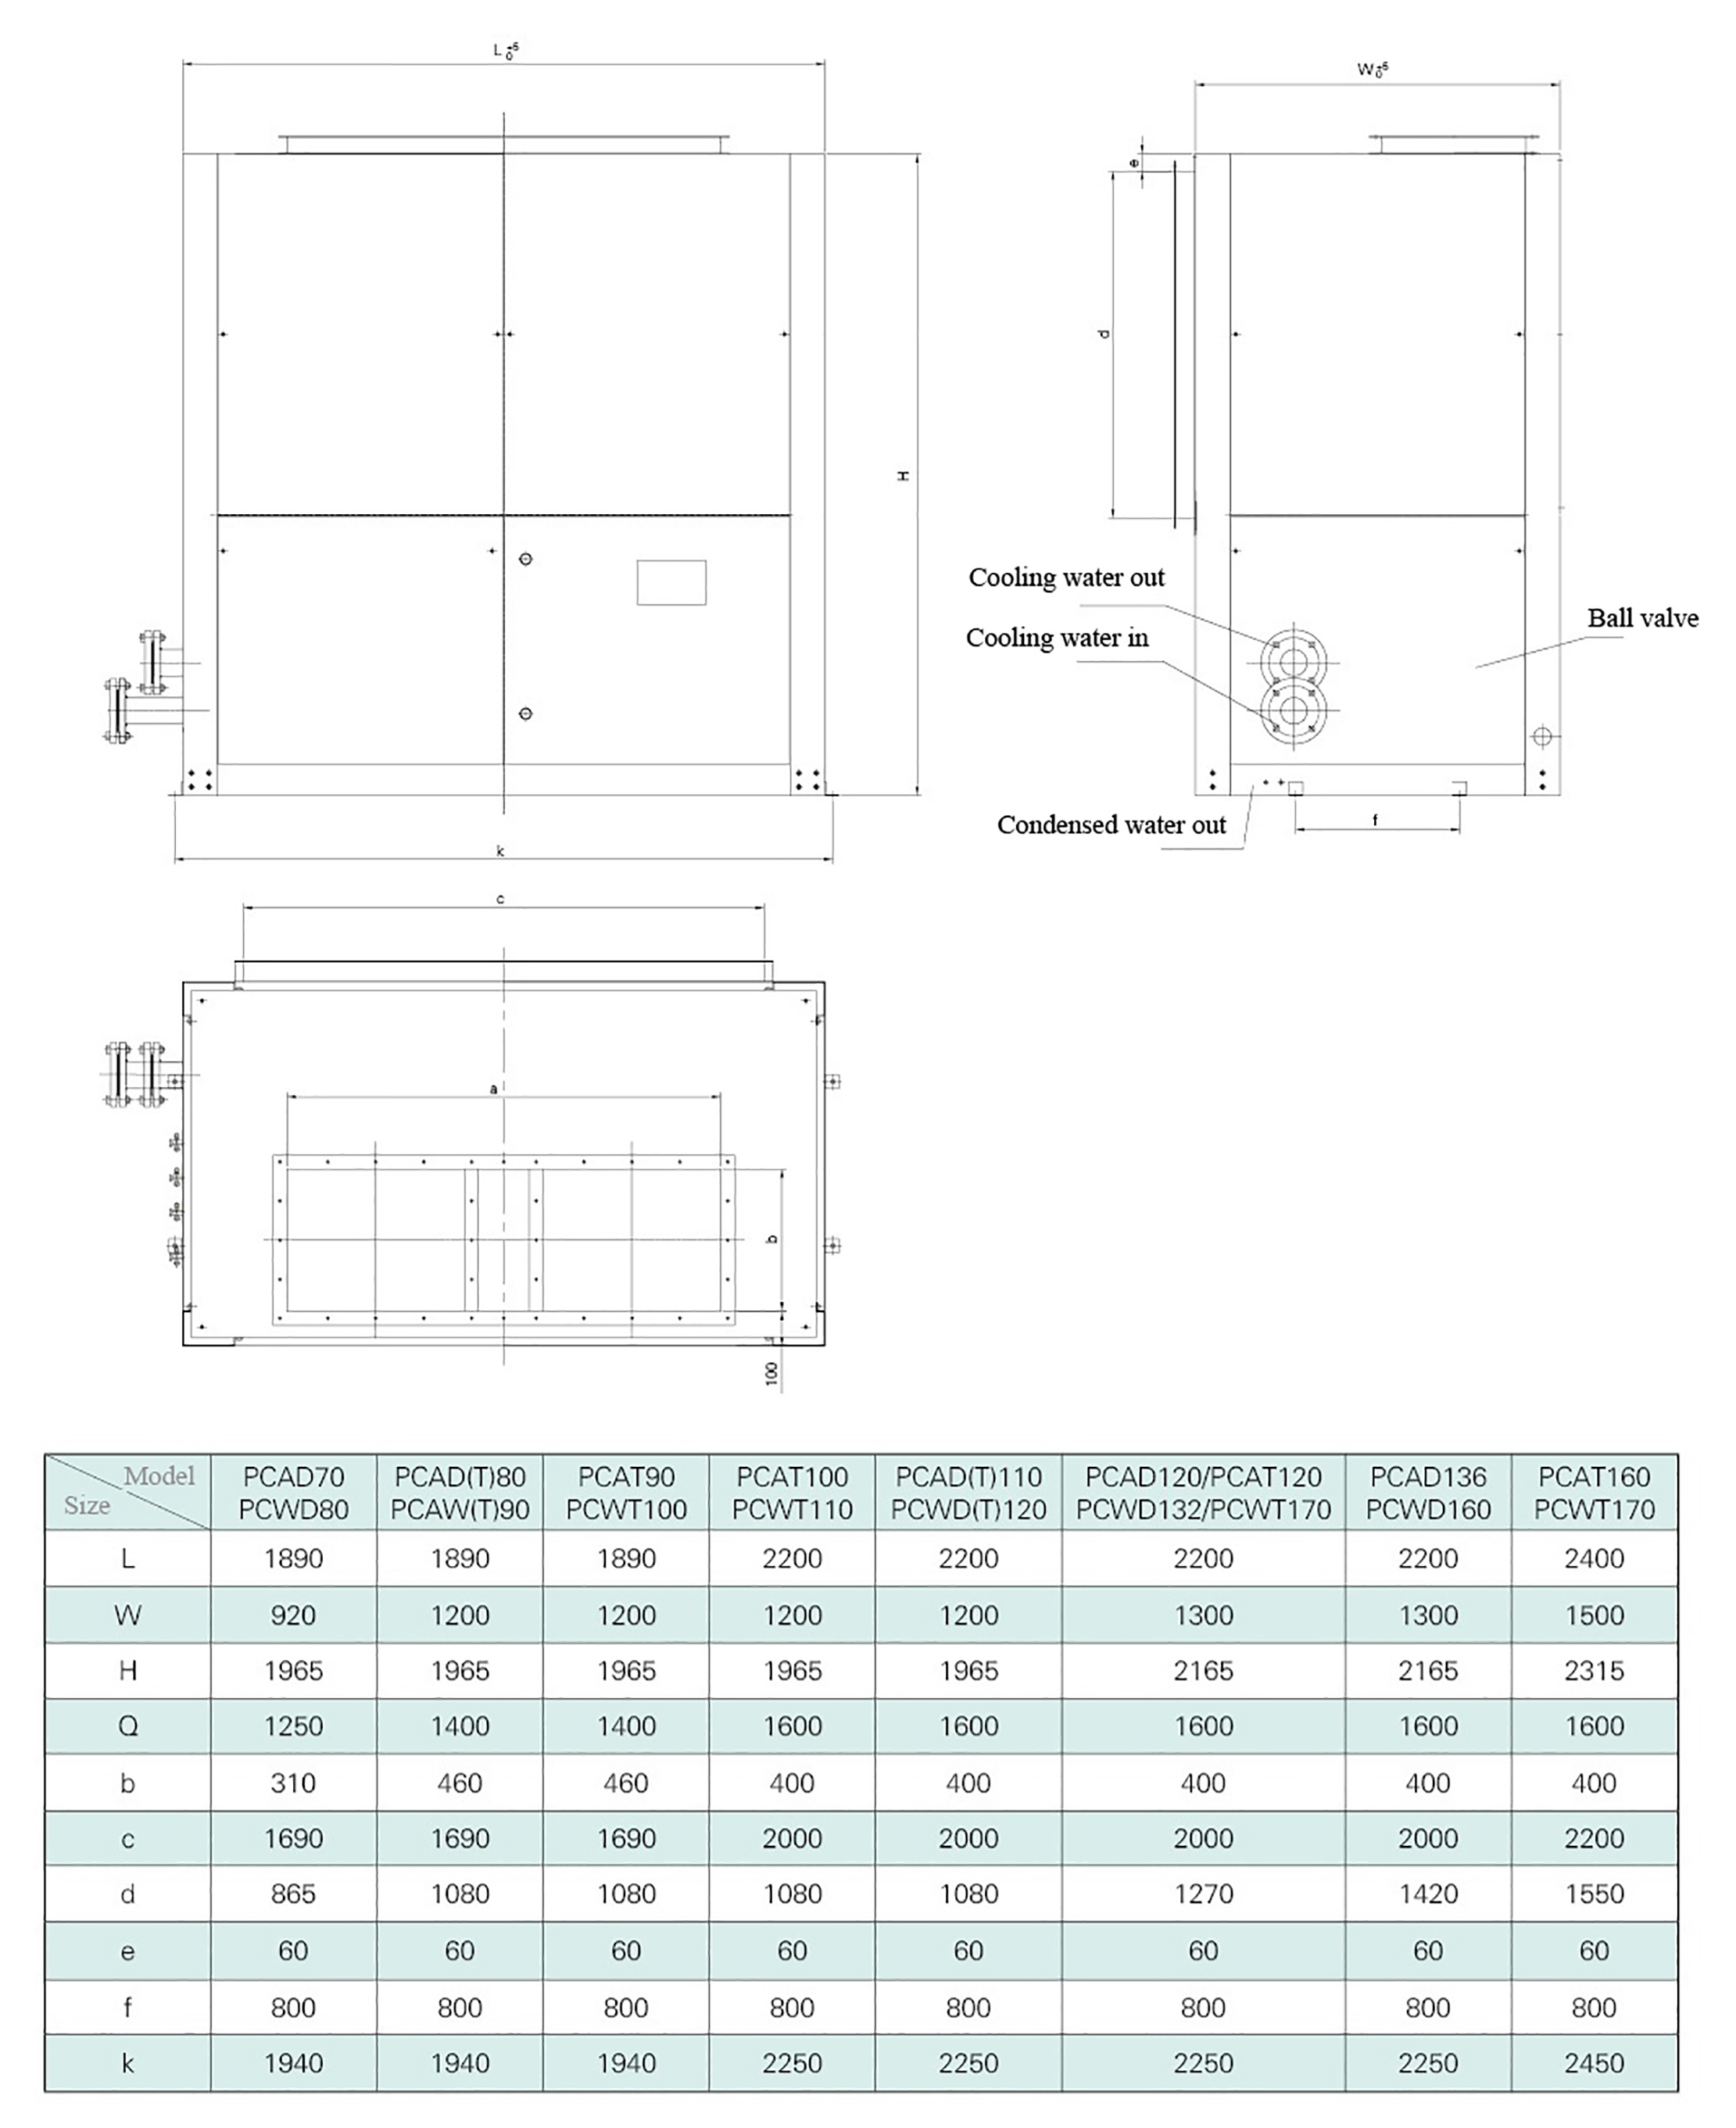 Technical Data - Cabinet Air Condition Unit - pg 15